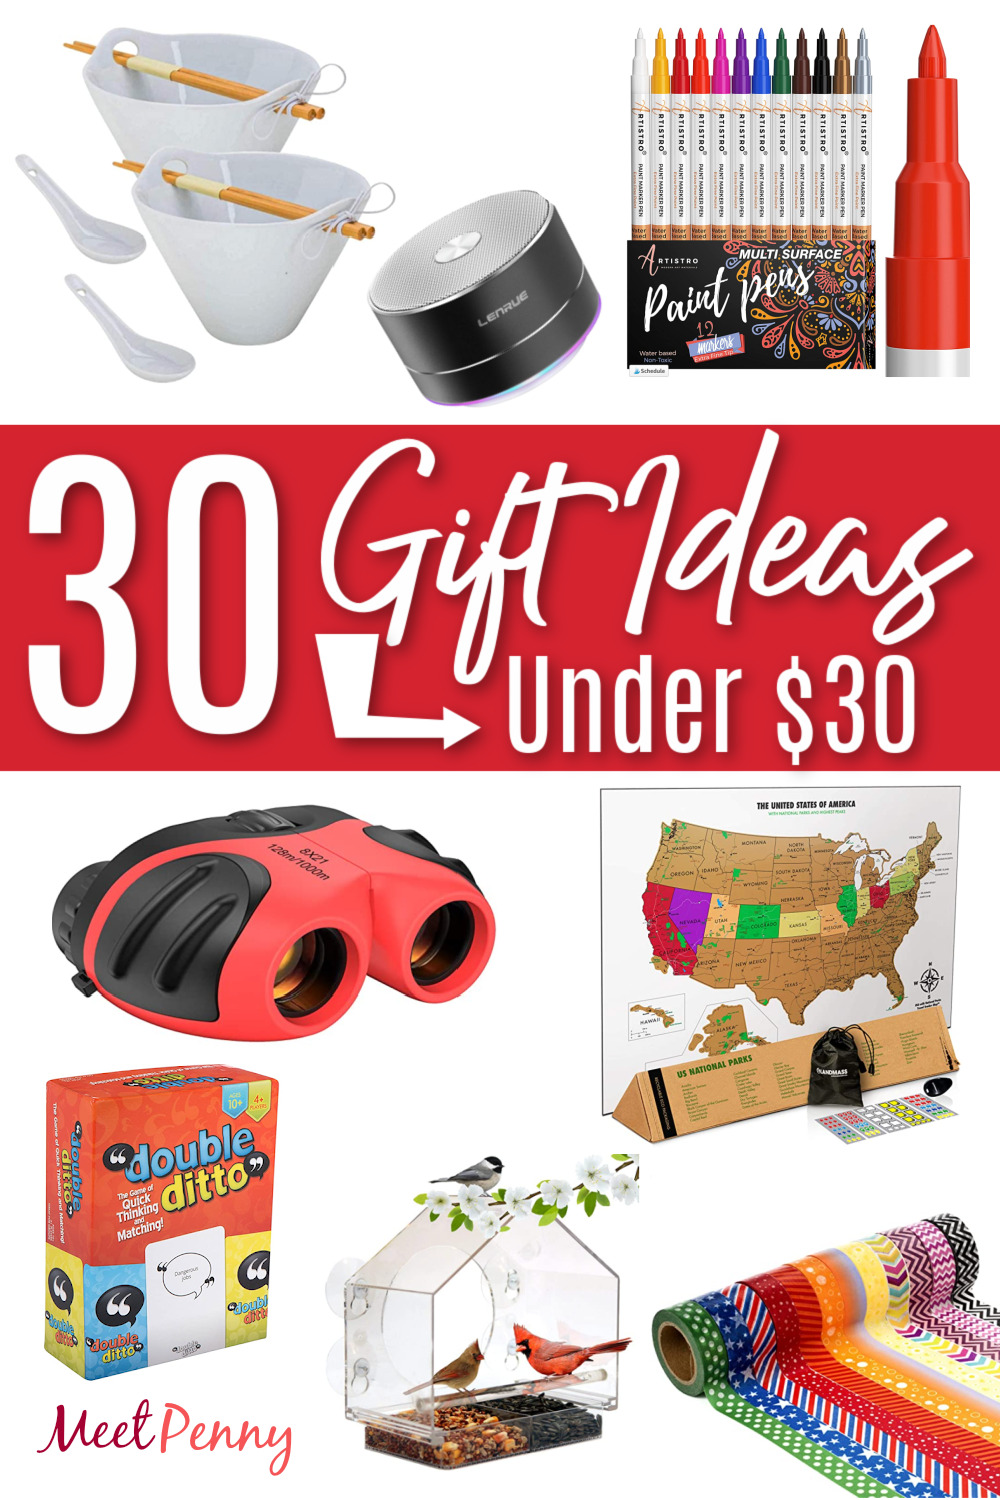 Buy gifts on a budget with this list of gift ideas under $30 for everyone.